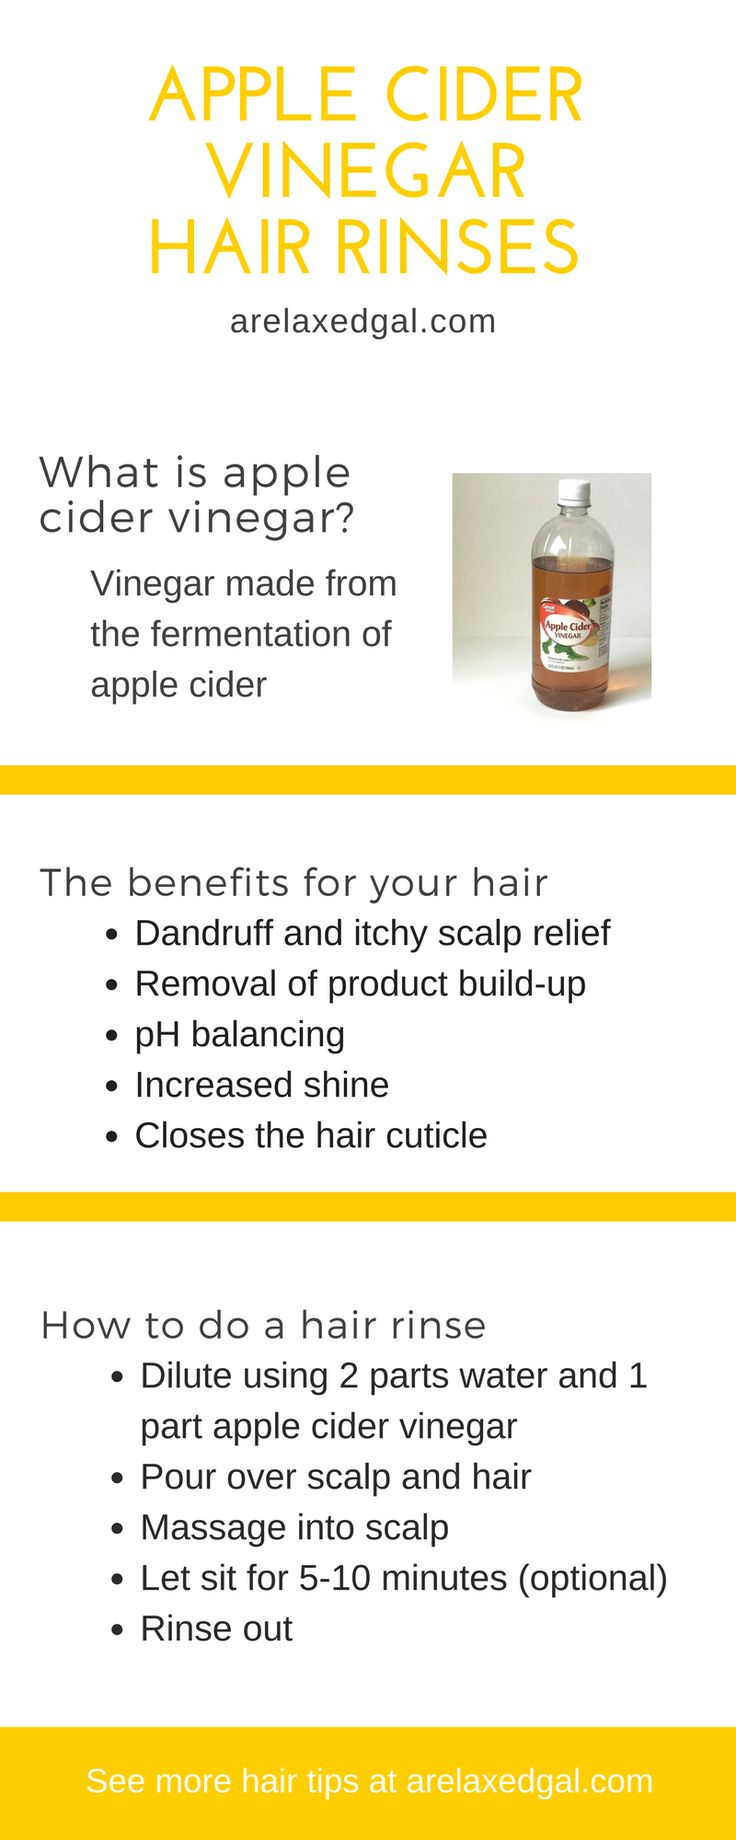 Why I Rinse My Hair with Apple Cider Vinegar | Apple Cider Vinegar is a natural hair remedy and product that has many benefits for your natural or relaxed hair. ~ arelaxedgal.com